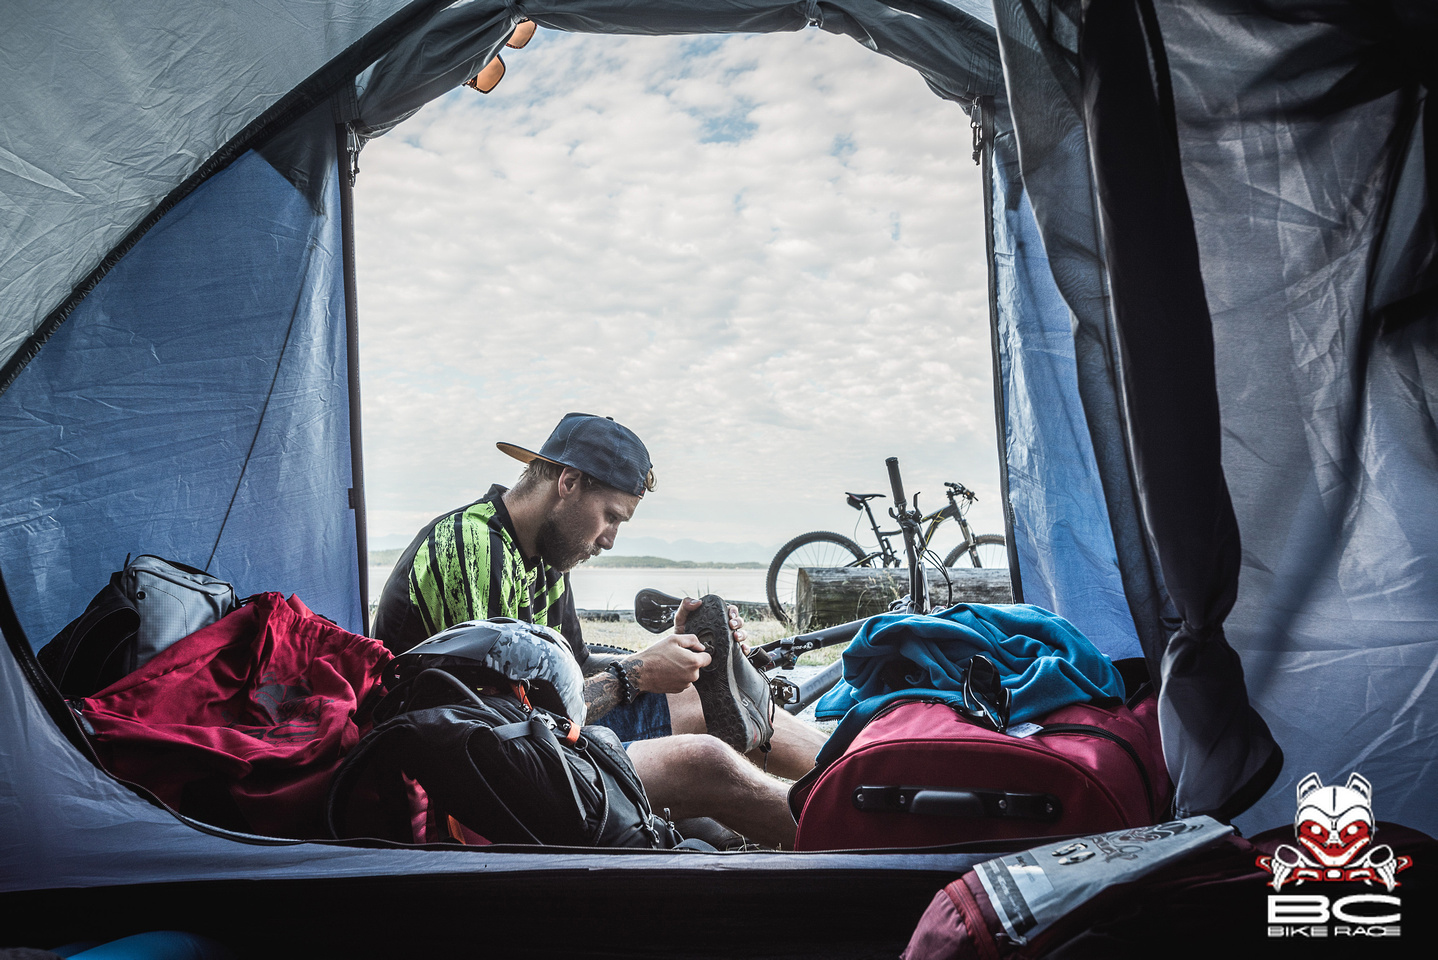 Waking up to this every day before the day's adventures is more than just a race.